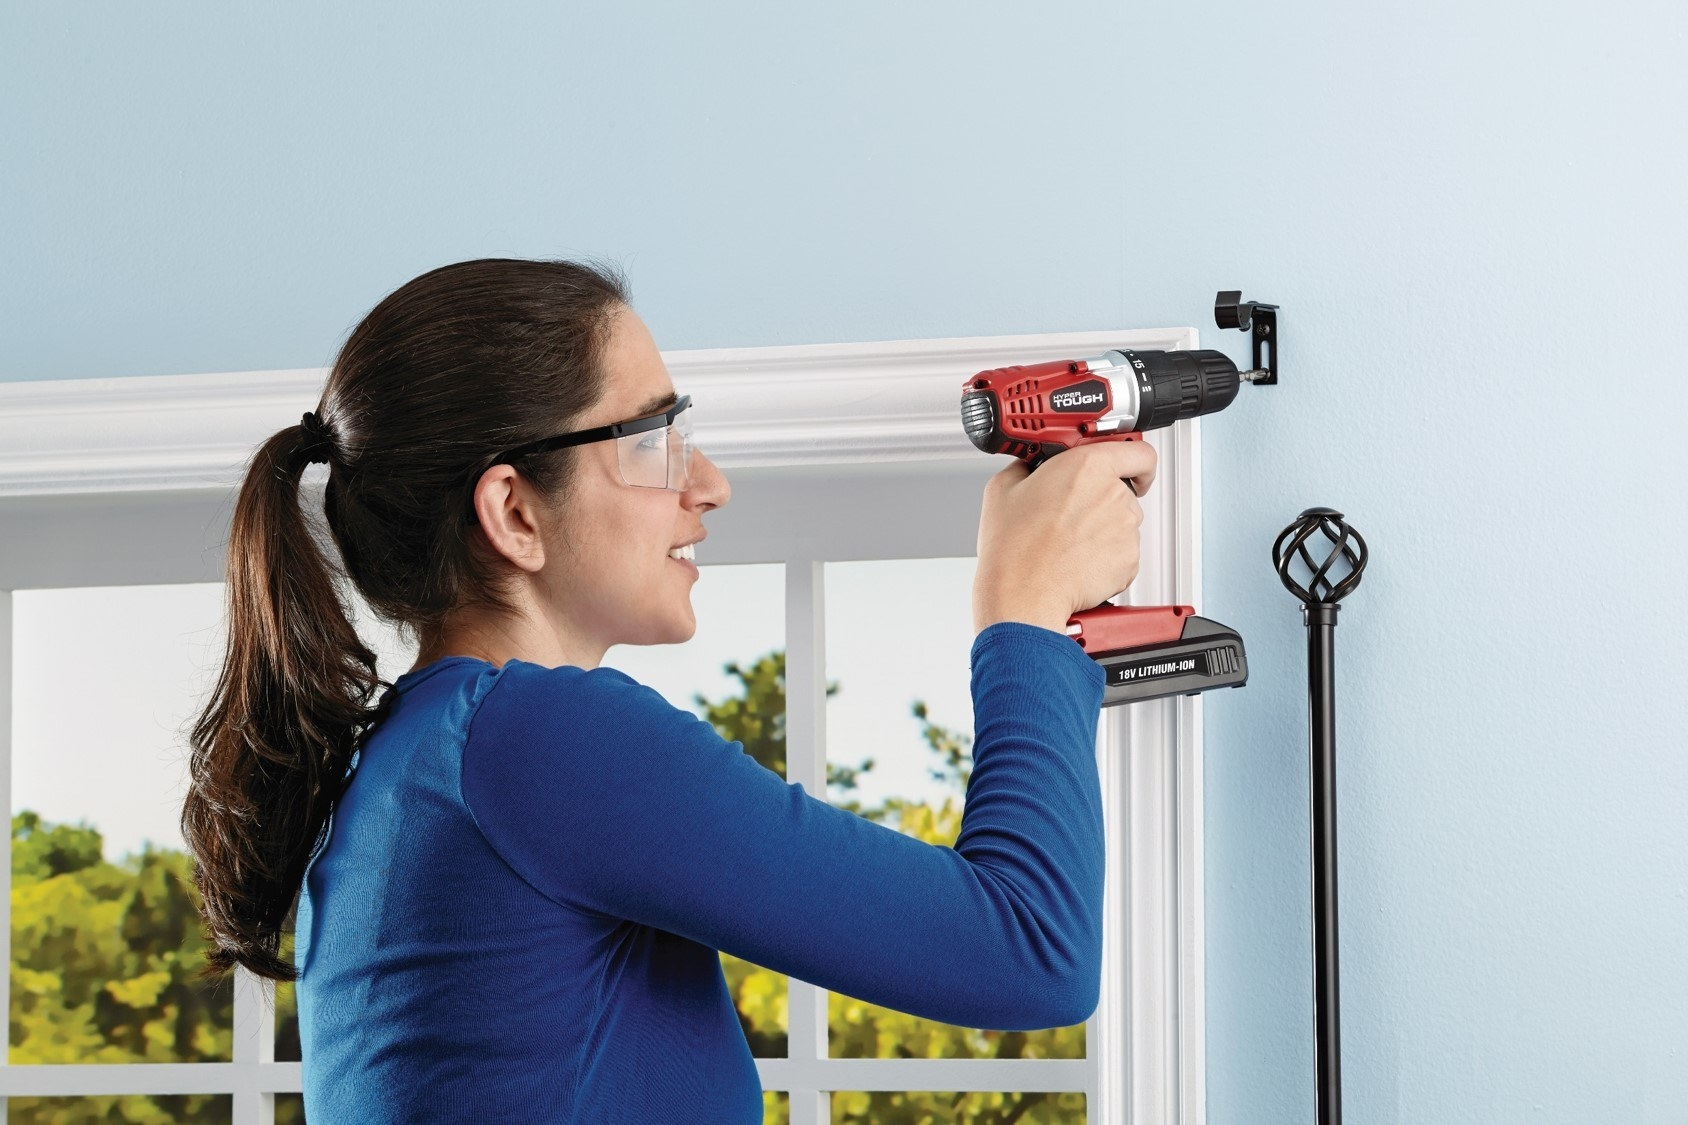 person using a power drill to screw in a curtain rod hanger